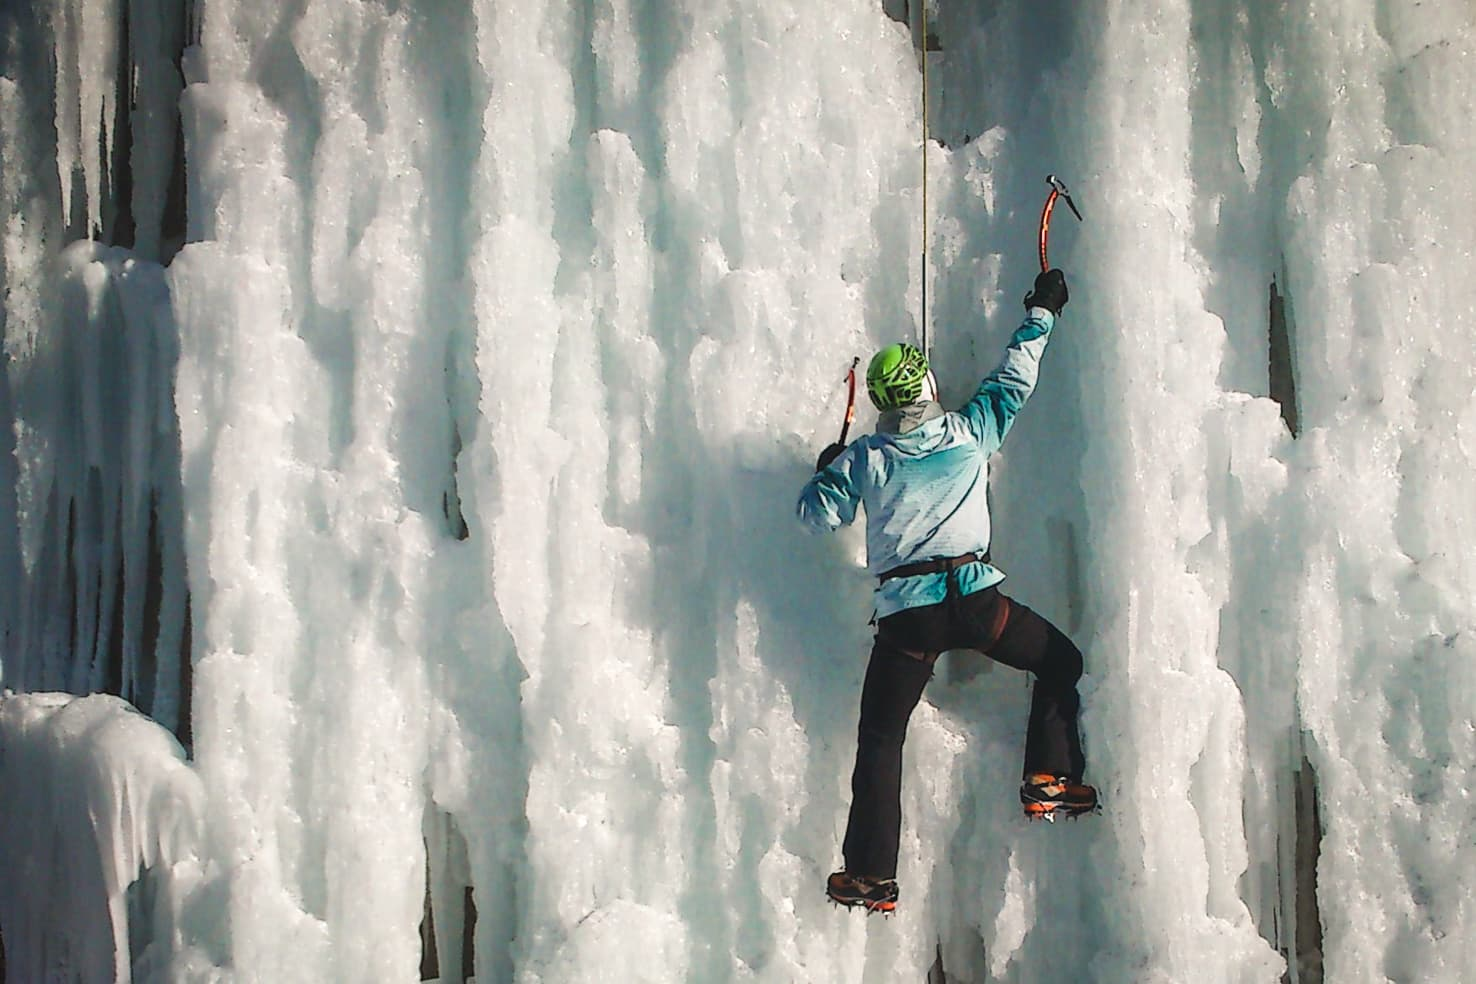 Things to do in Jasper National Park - 56 Learn ice climbing on a frozen waterfall